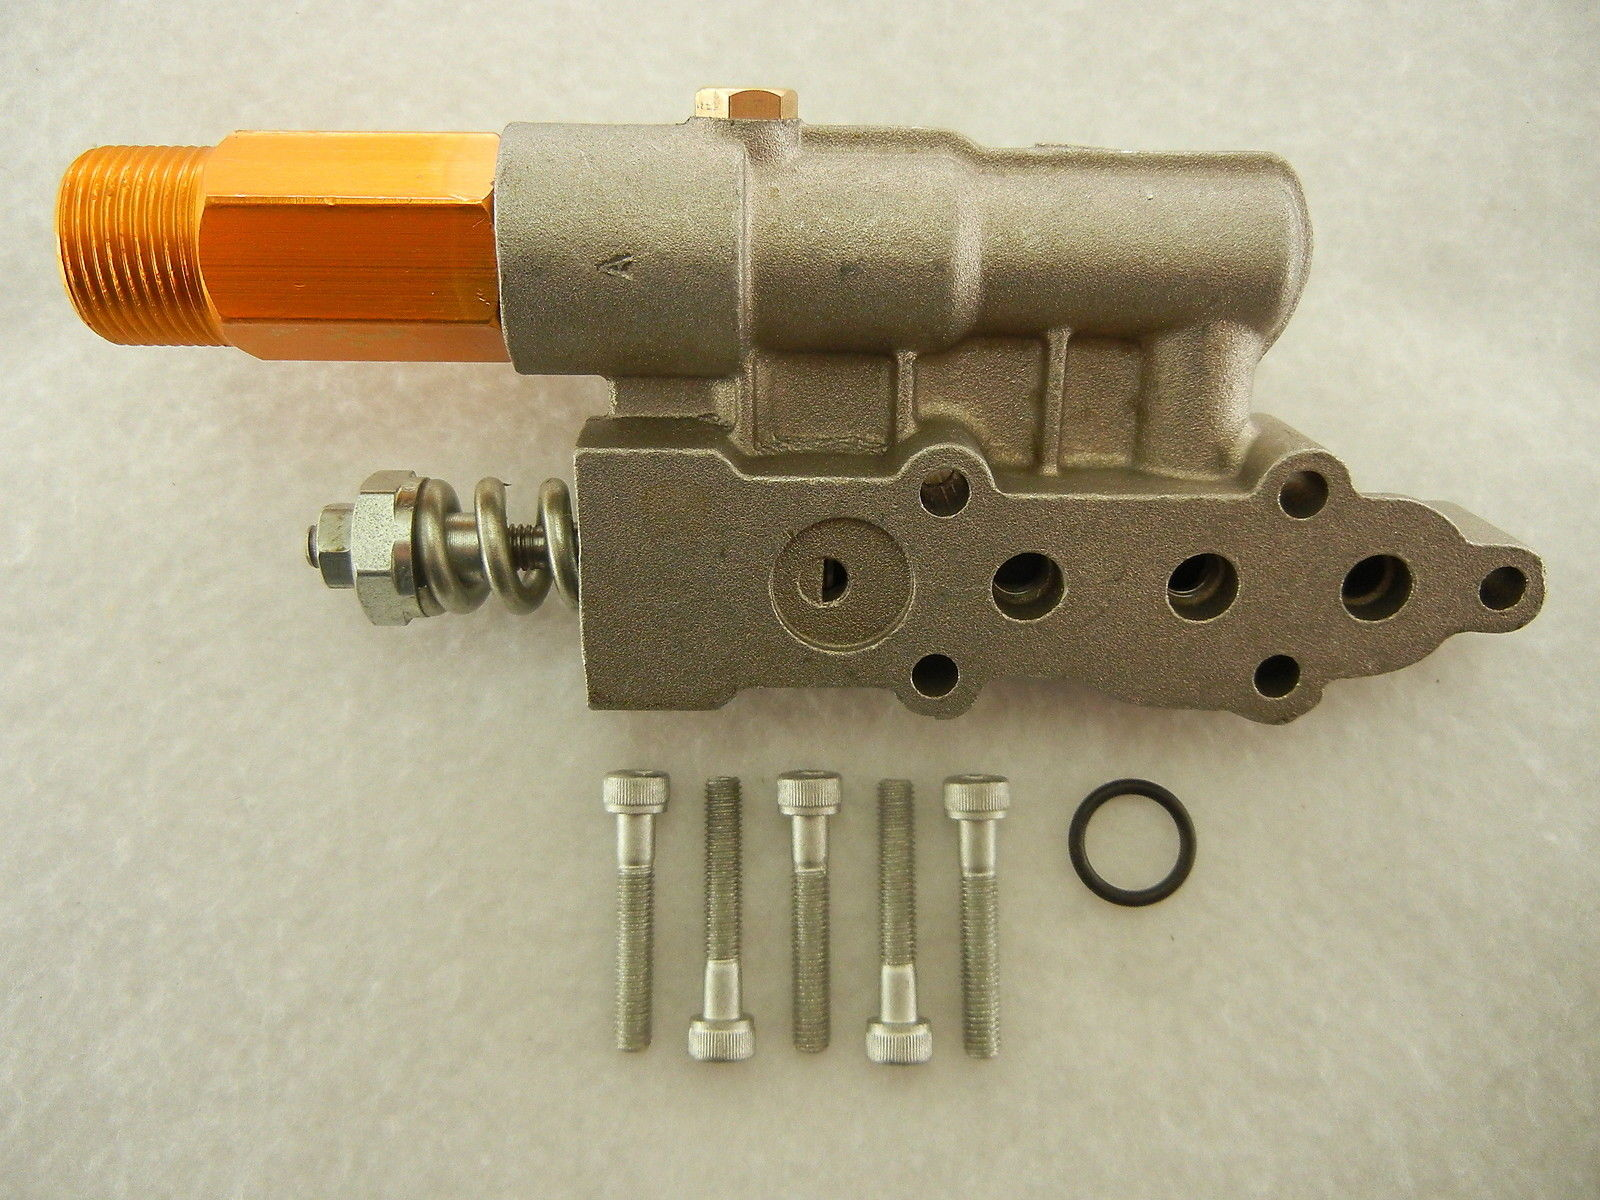 5 Bolt Manifold For Simpson and Homelite Pressure Washers